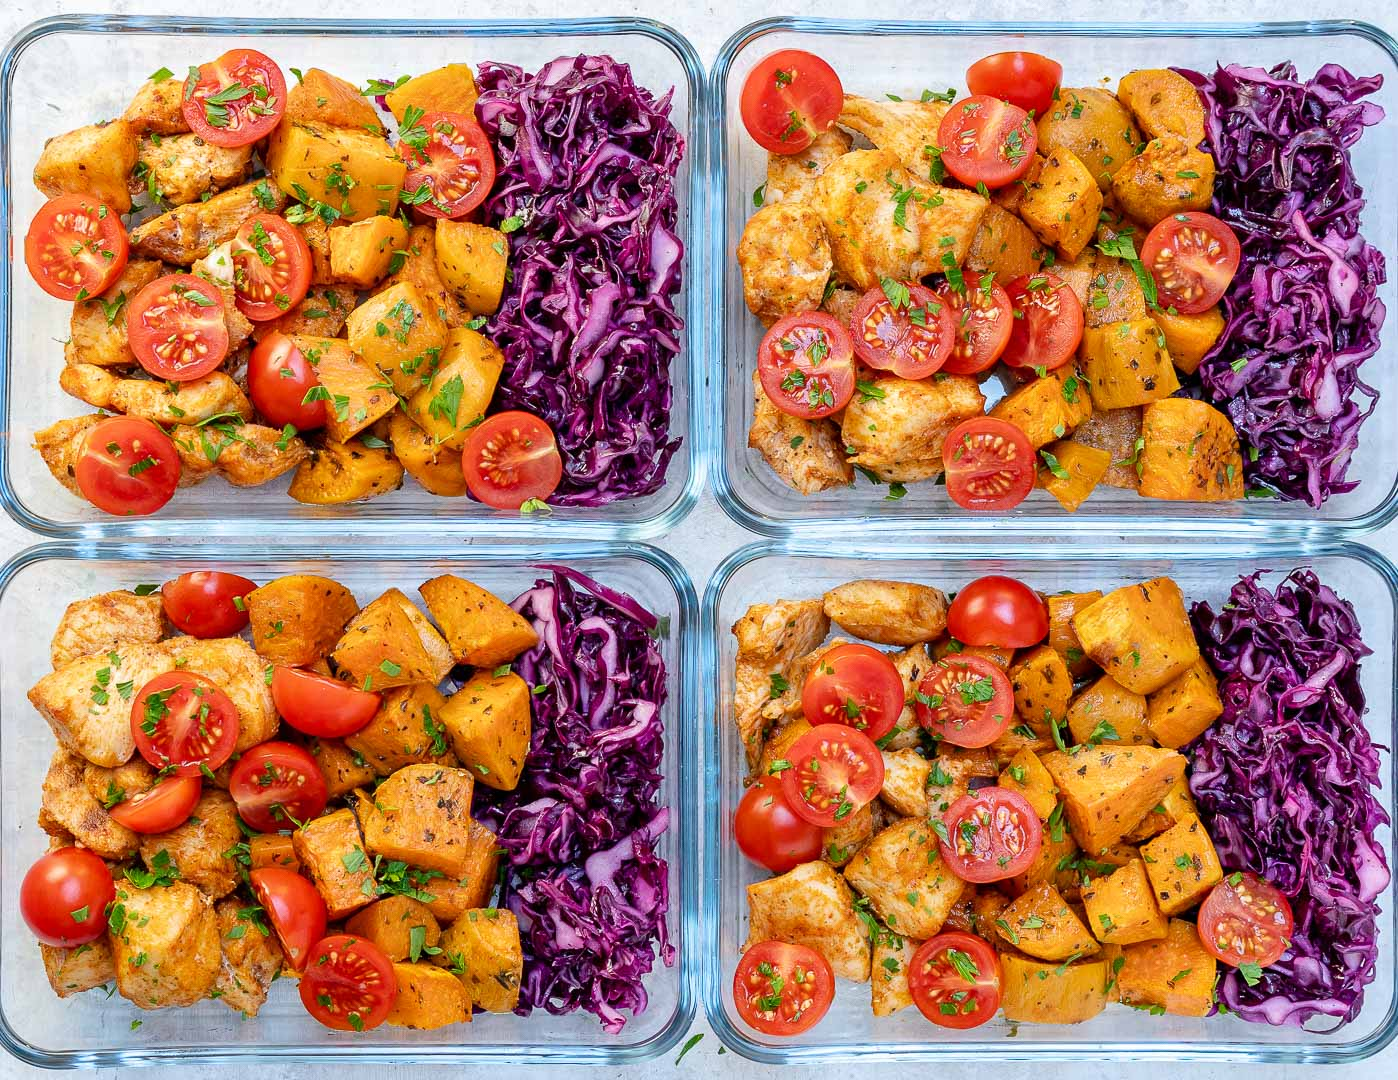 CleanFoodCrush Roasted Chicken Sweet Potato Meal Prep